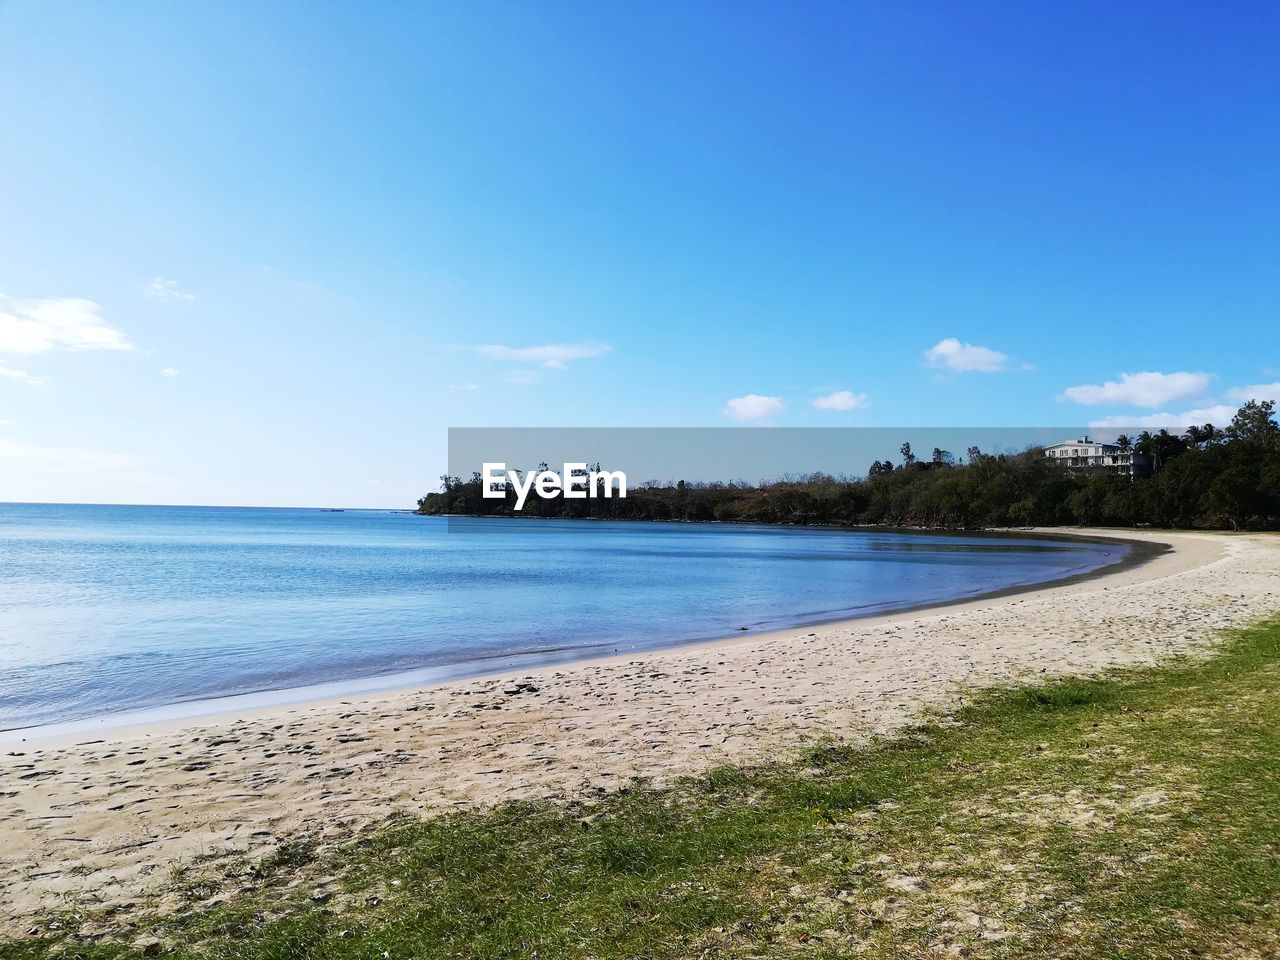 tranquil scene, tranquility, nature, beauty in nature, scenics, water, tree, sky, day, no people, outdoors, blue, beach, sand, landscape, sea